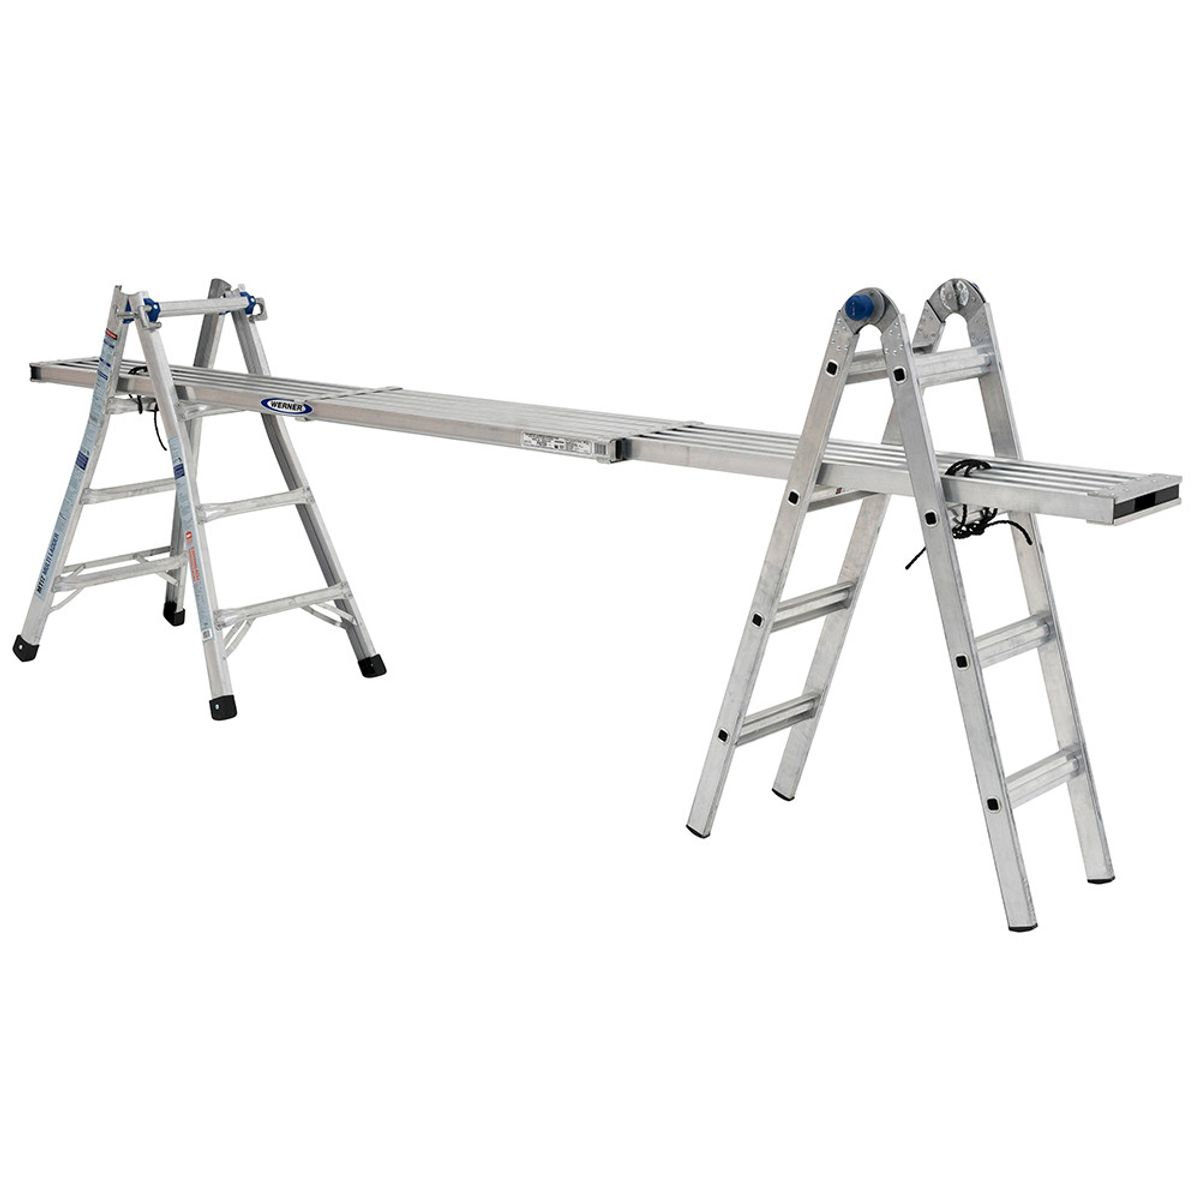 Mt 17 Multi Purpose Ladders Werner Us